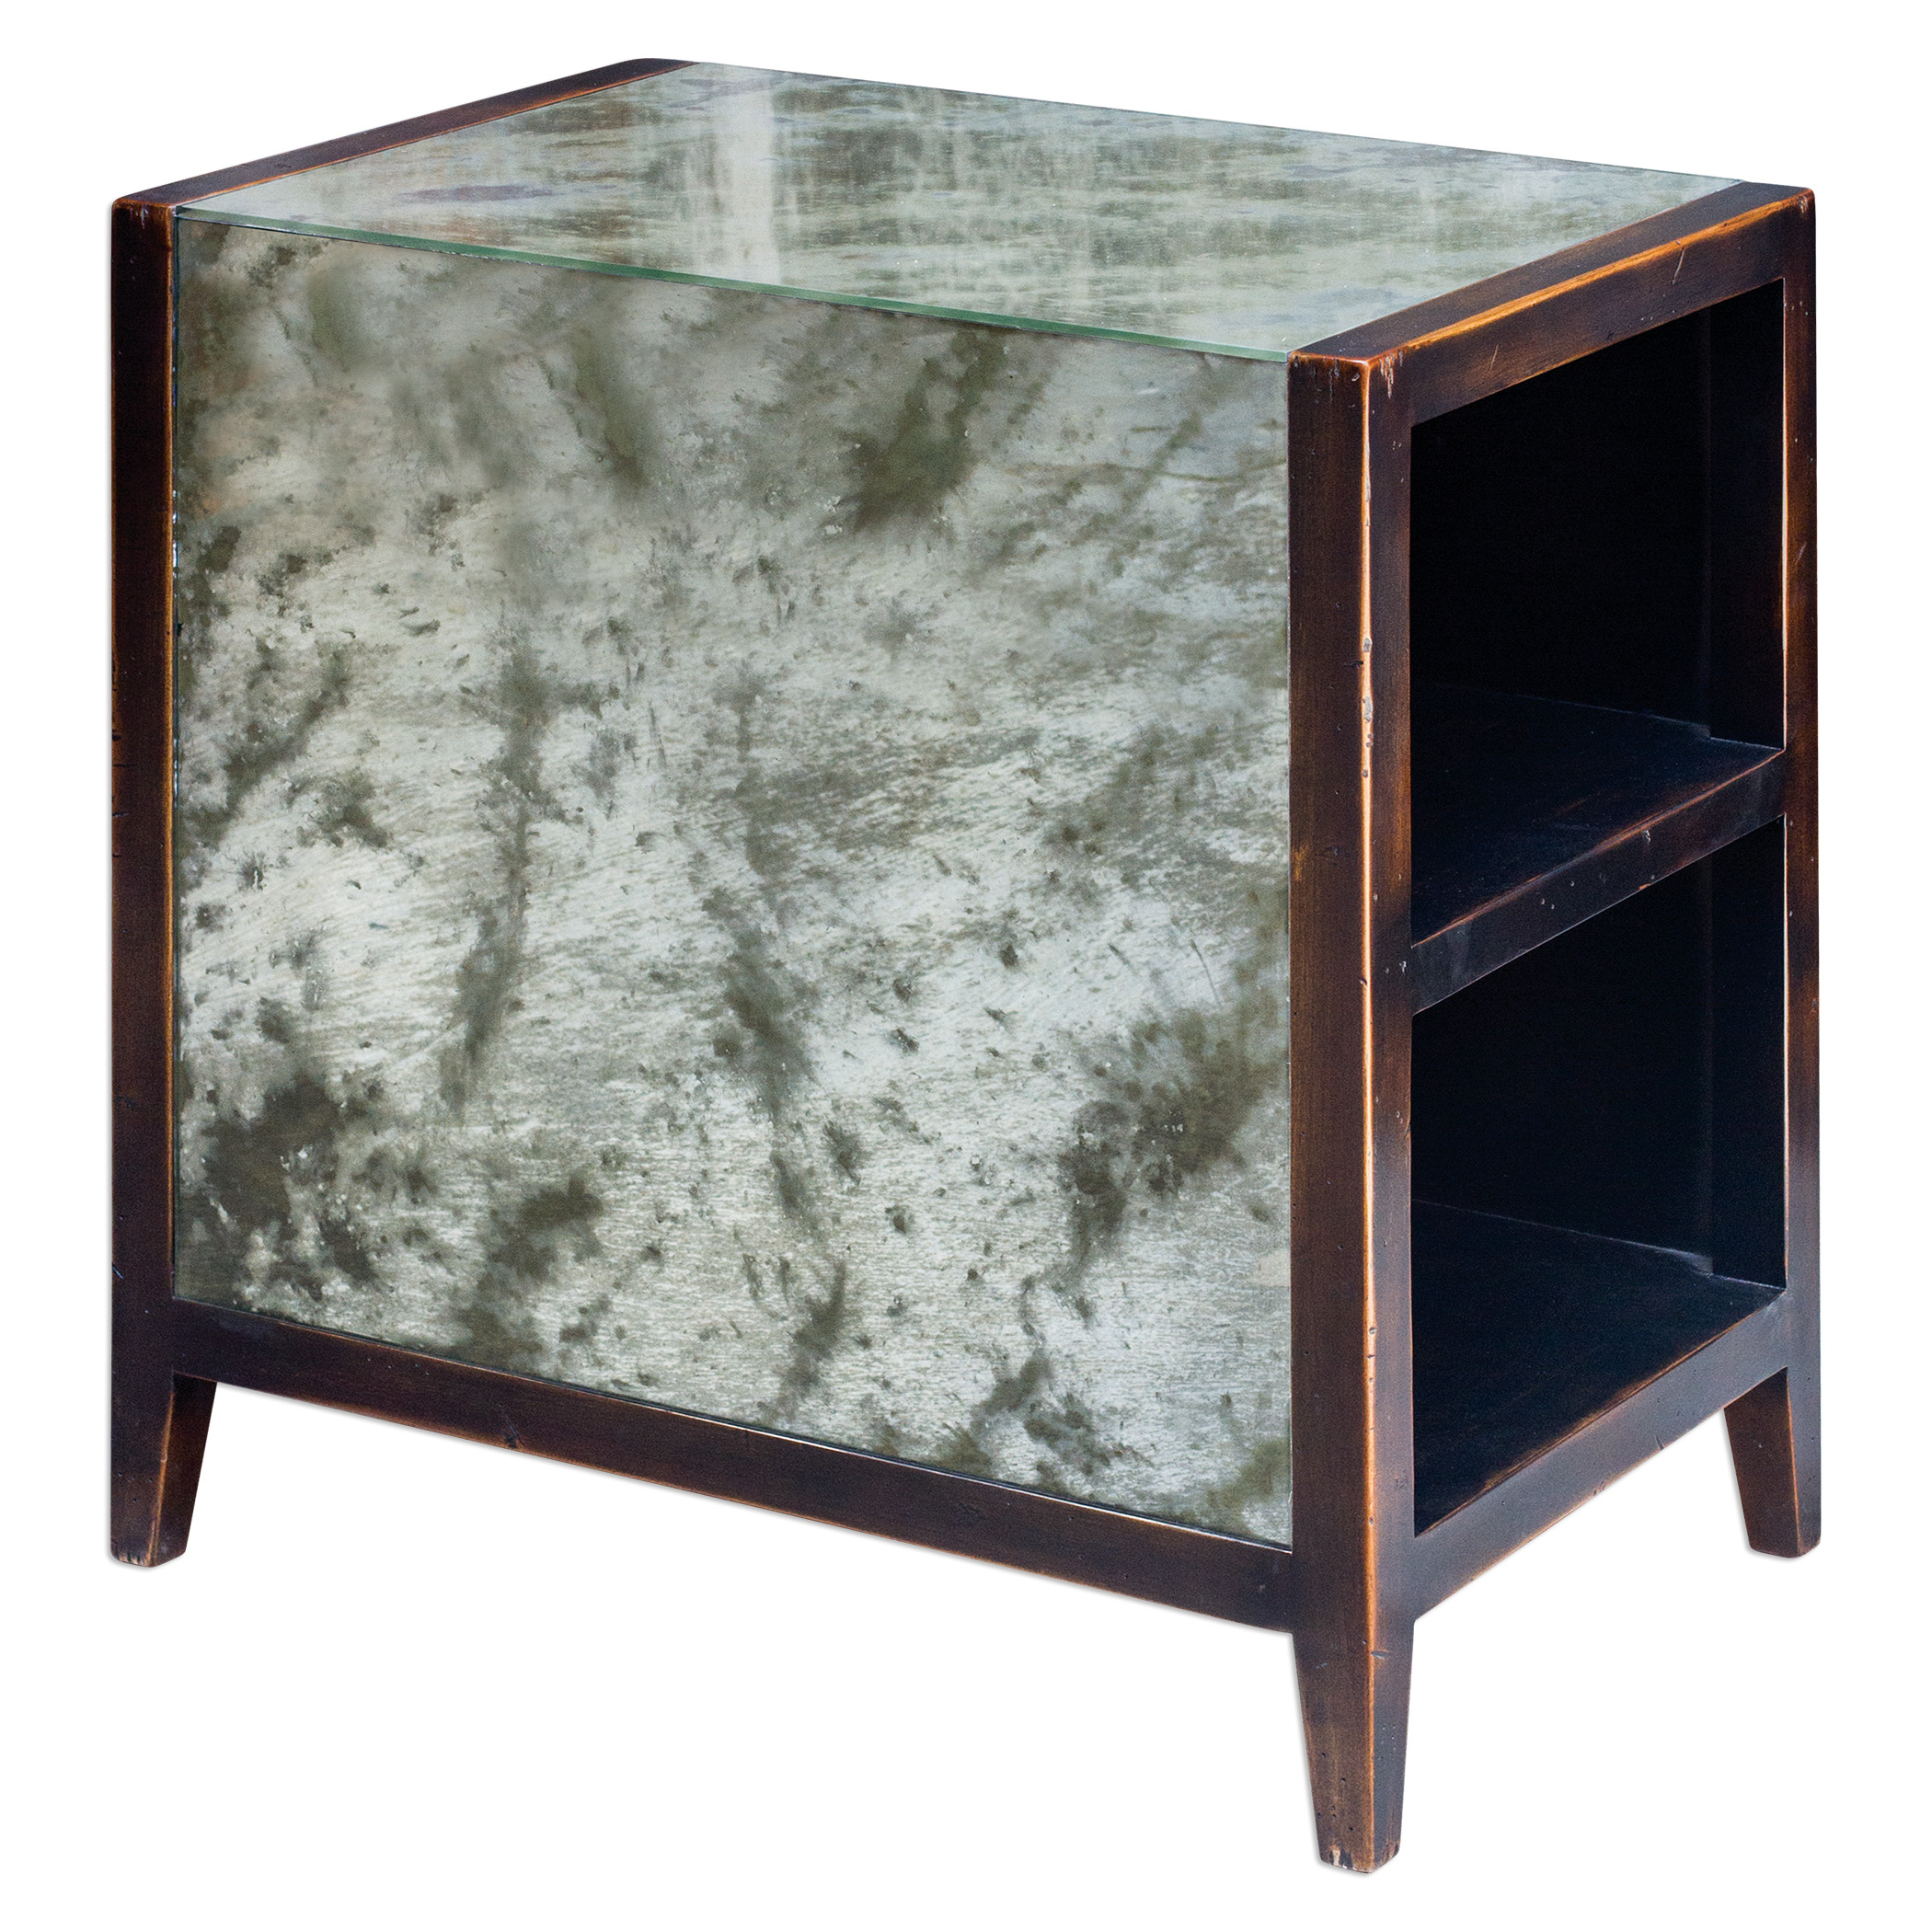 Uttermost Accent Furniture Tierney Antique Mirror End Table - Item Number: 25713